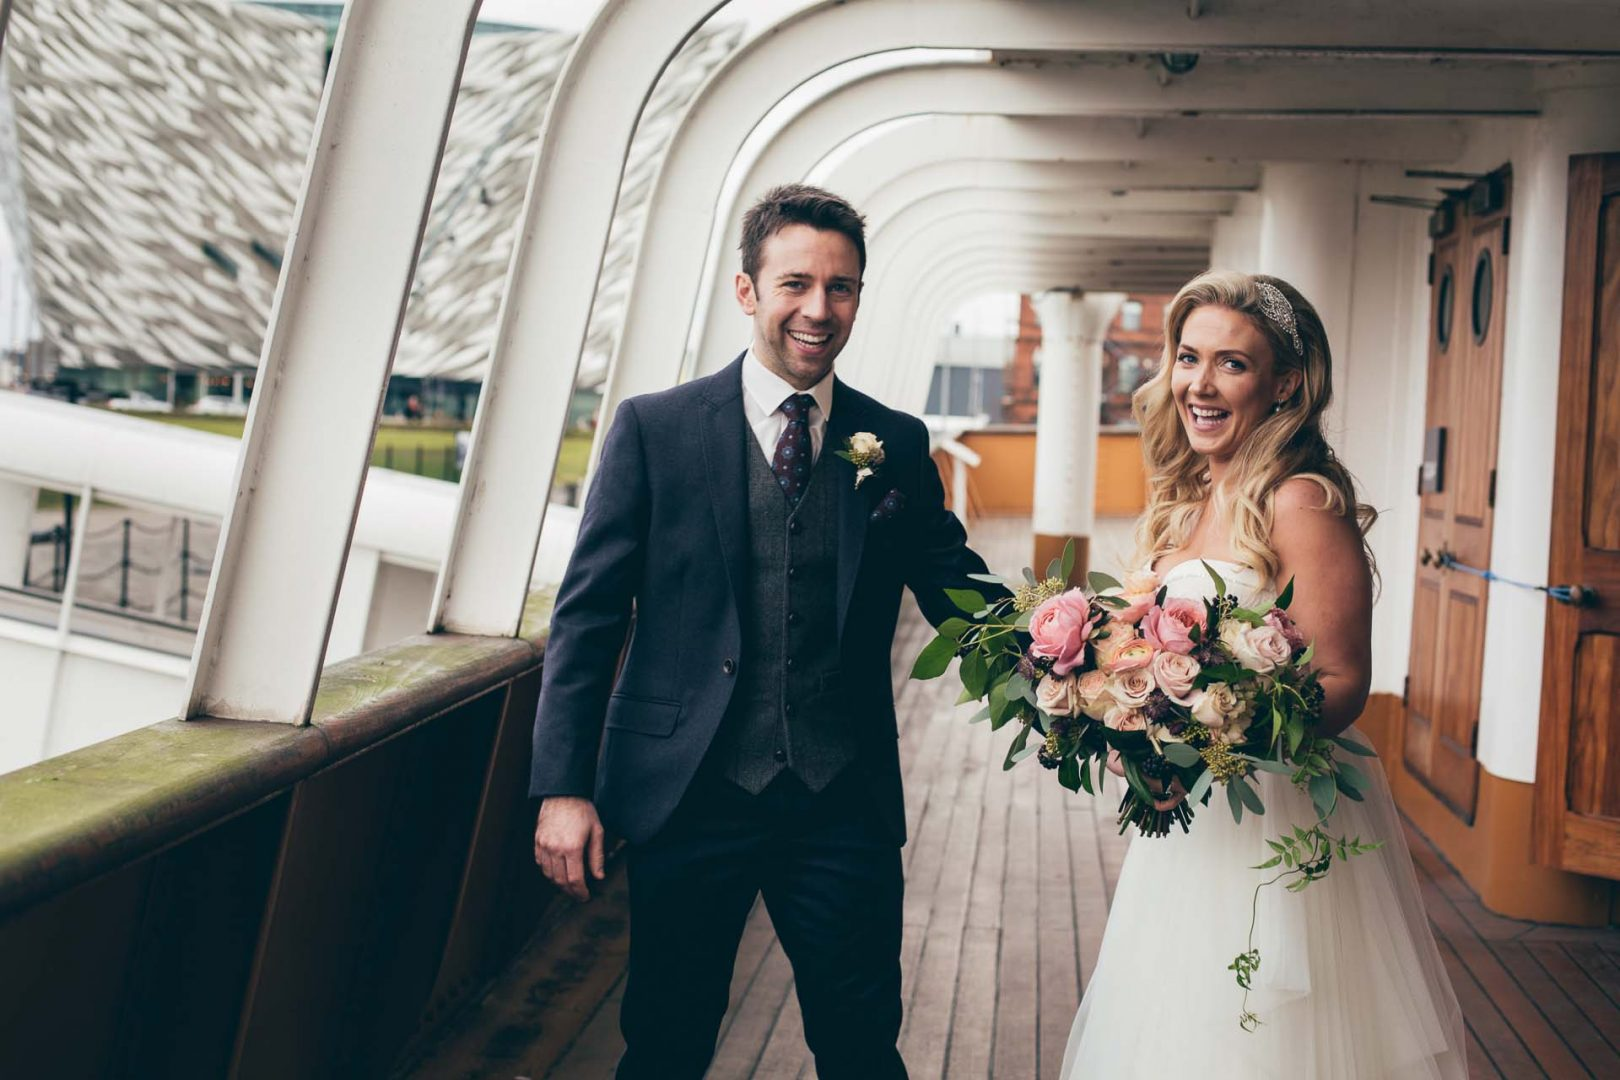 SARAH_GRAY_PHOTOGRAPHY_WEDDING_NORTHERN_IRELAND_BELFAST_SS_NOMADIC_HADSKIS-3